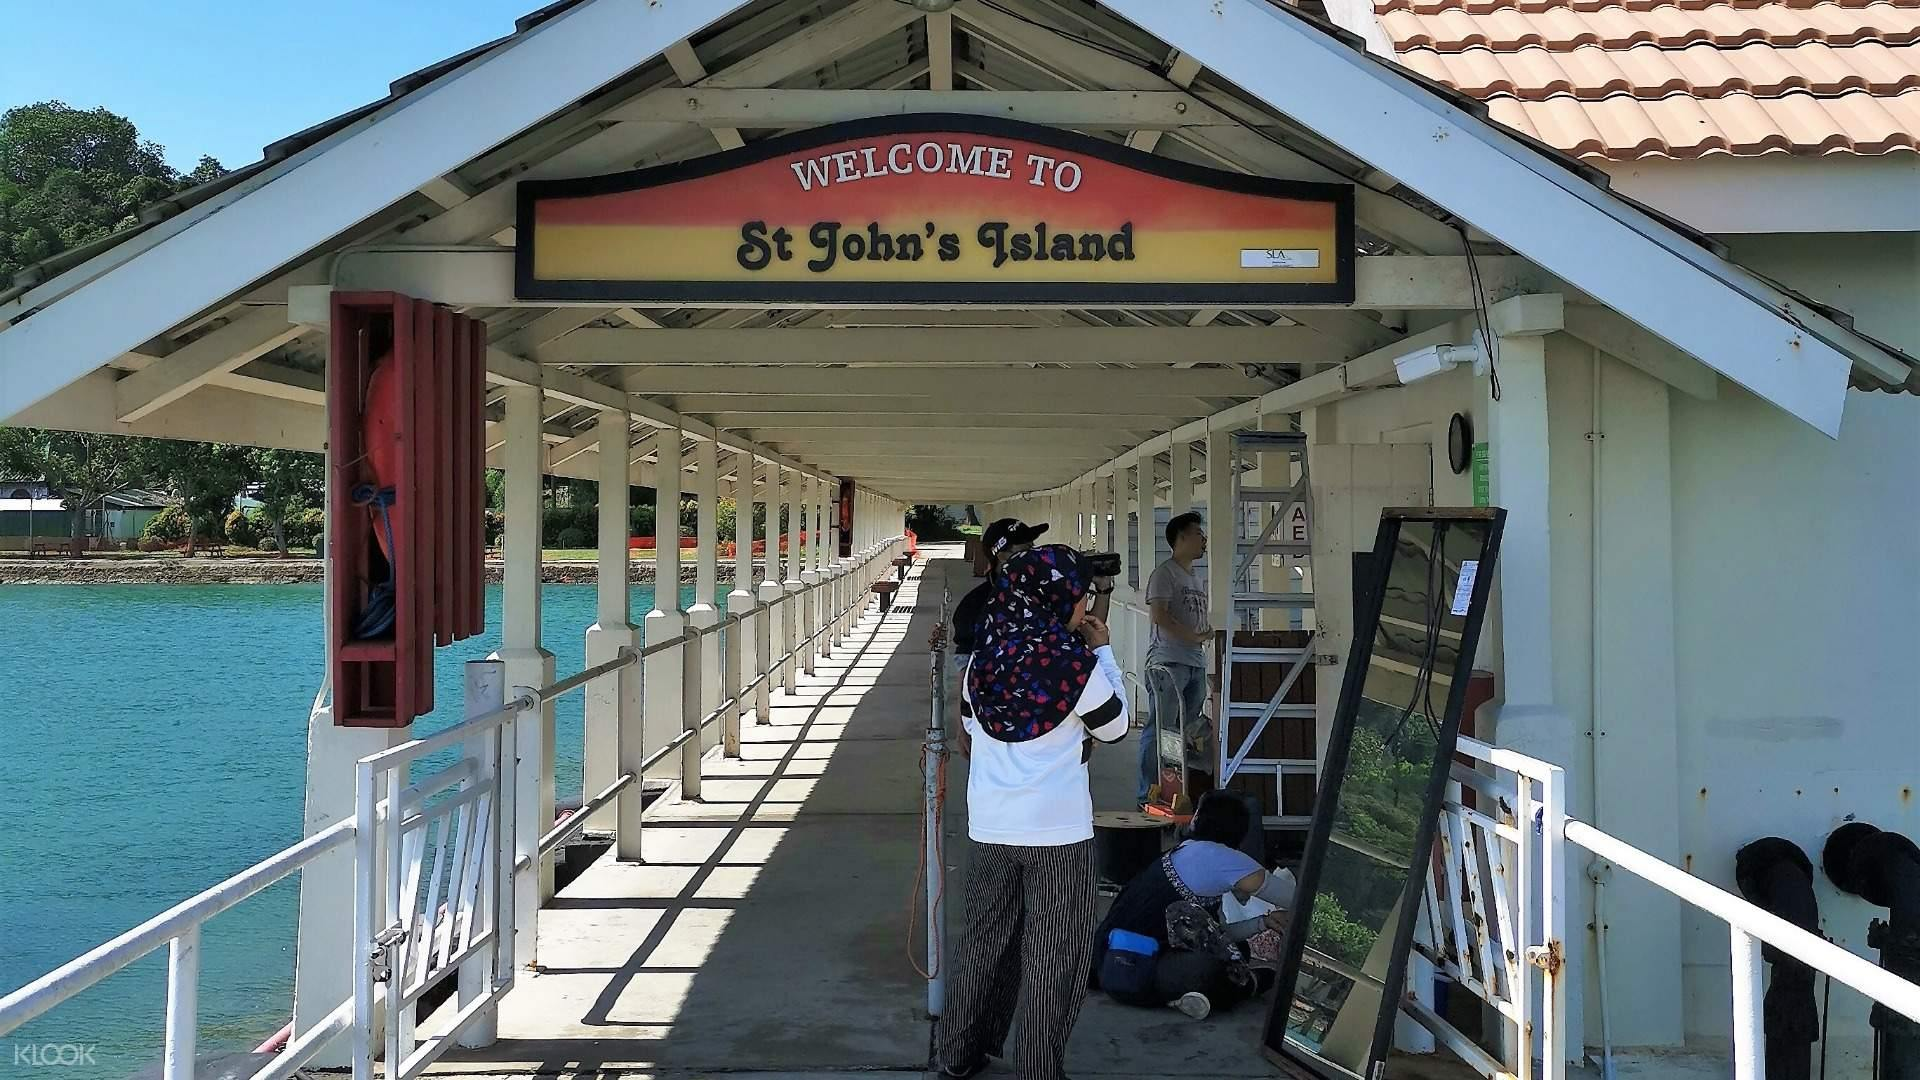 [Klook Exclusive] Singapore Island Cruise: Ferry Tickets between St. John's Island, Lazarus Island, and Kusu Island, Sister's Island